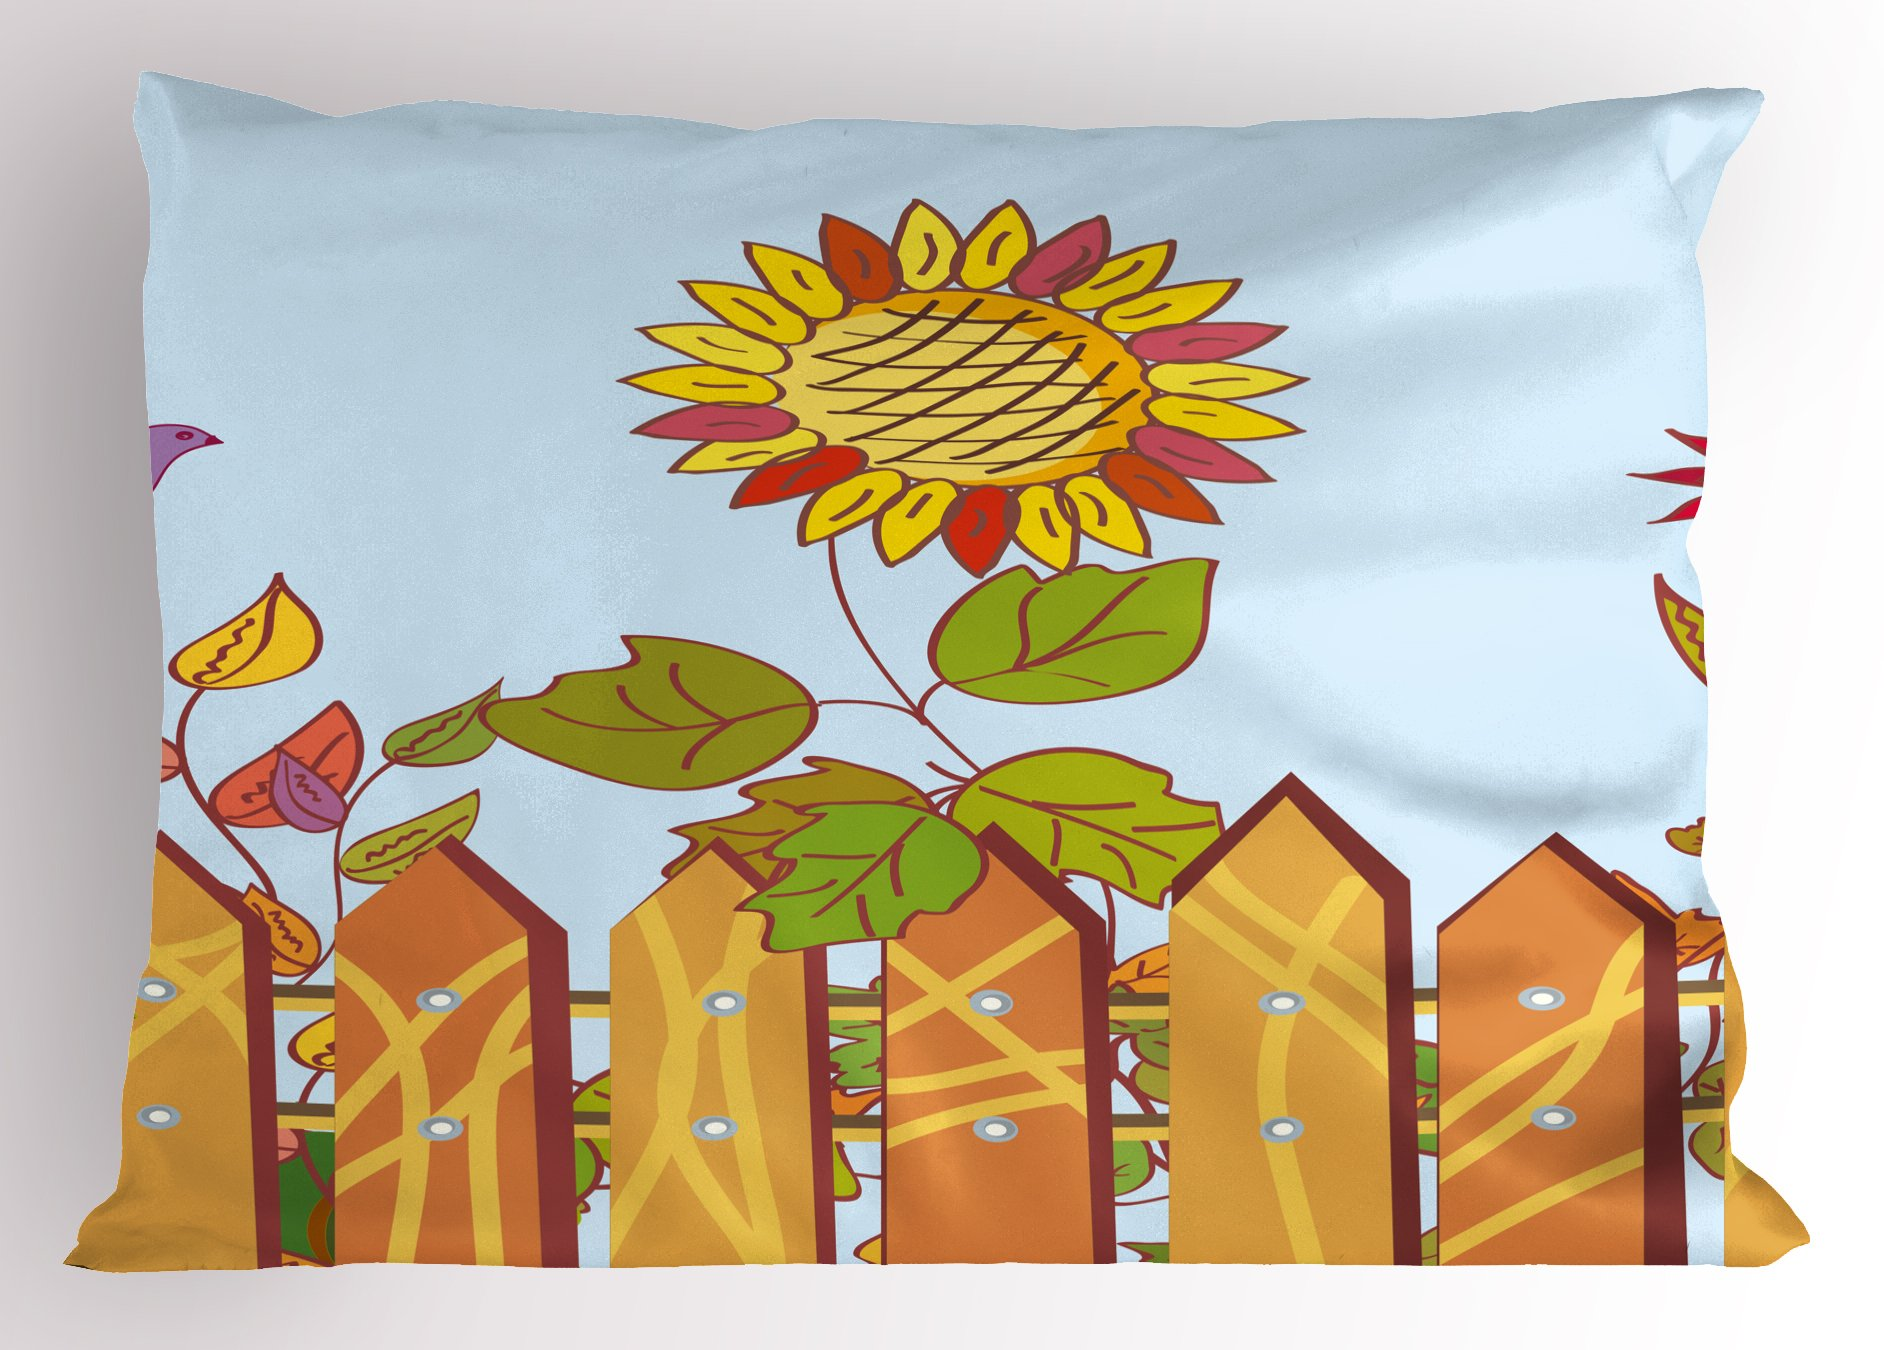 Lunarable Vineyard Pillow Sham, Sunflowers Behind The Wood Fences and Birds in Air Spring Daisy Blooms Graphic, Decorative Standard Size Printed Pillowcase, 26 X 20 inches, Multicolor by Lunarable (Image #1)